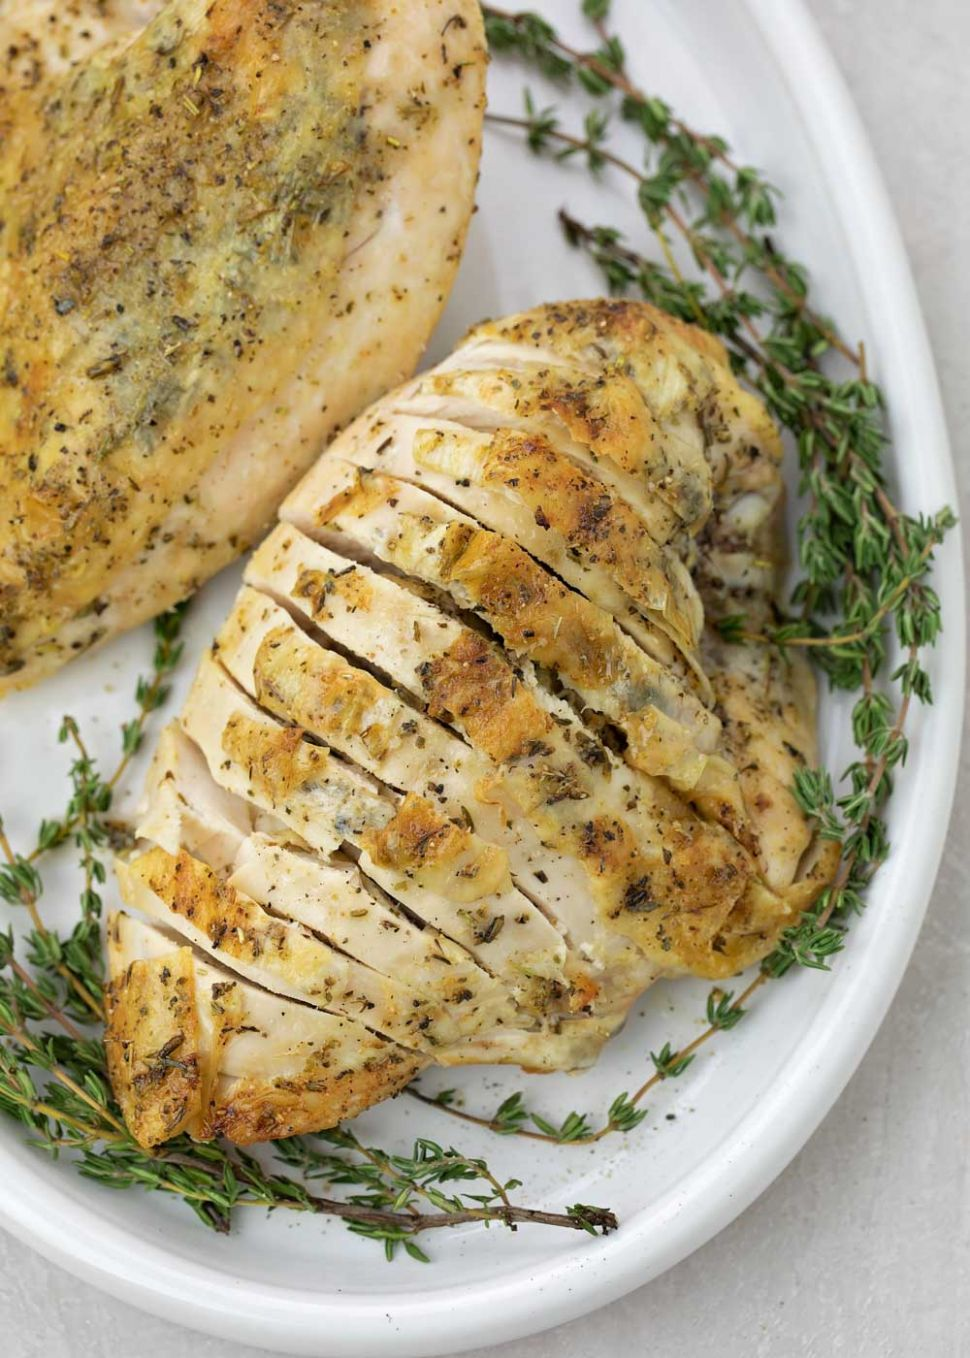 Bone-In Chicken or Turkey Breast - Recipes Chicken Breast On The Bone